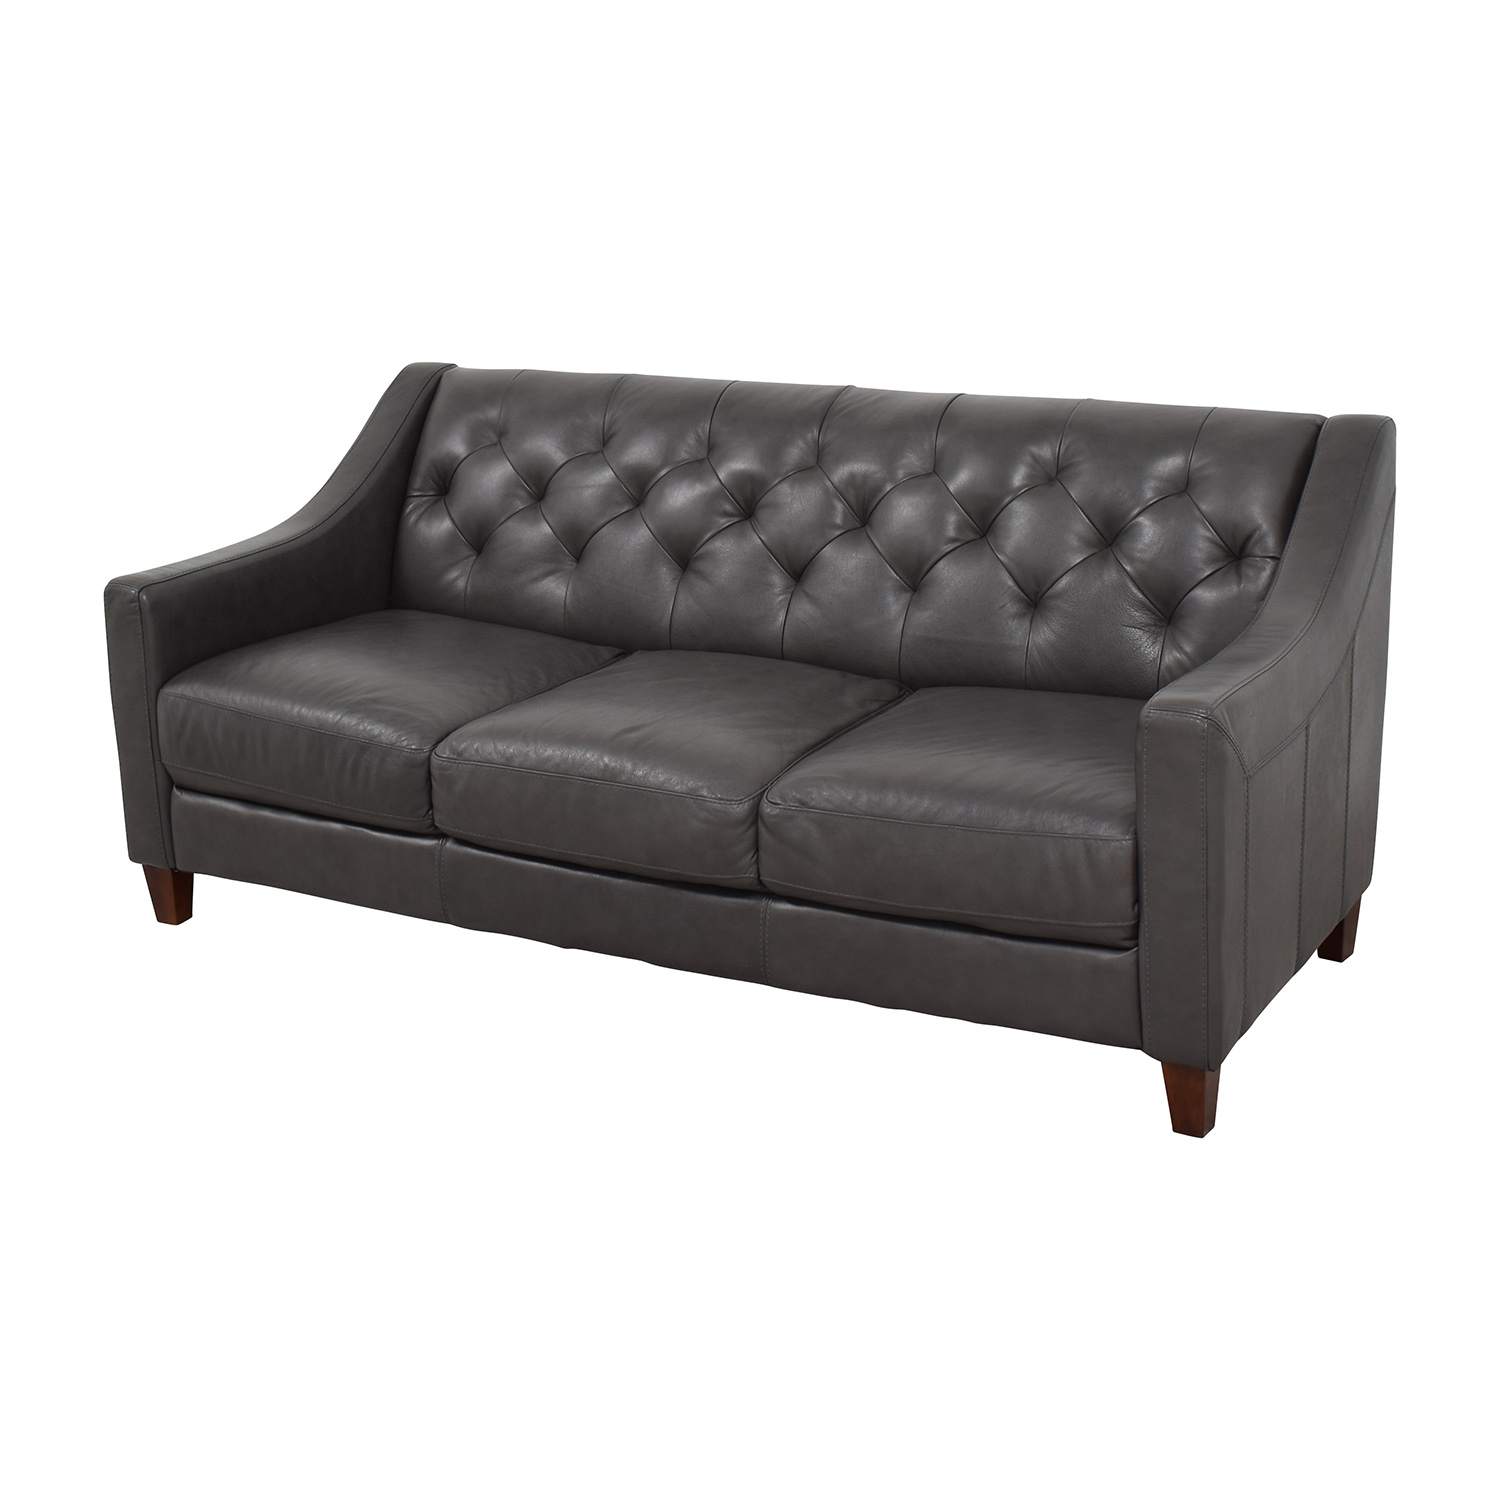 Excellent 69 Off Macys Macys Tufted Gray Leather Sofa Sofas Interior Design Ideas Gentotthenellocom